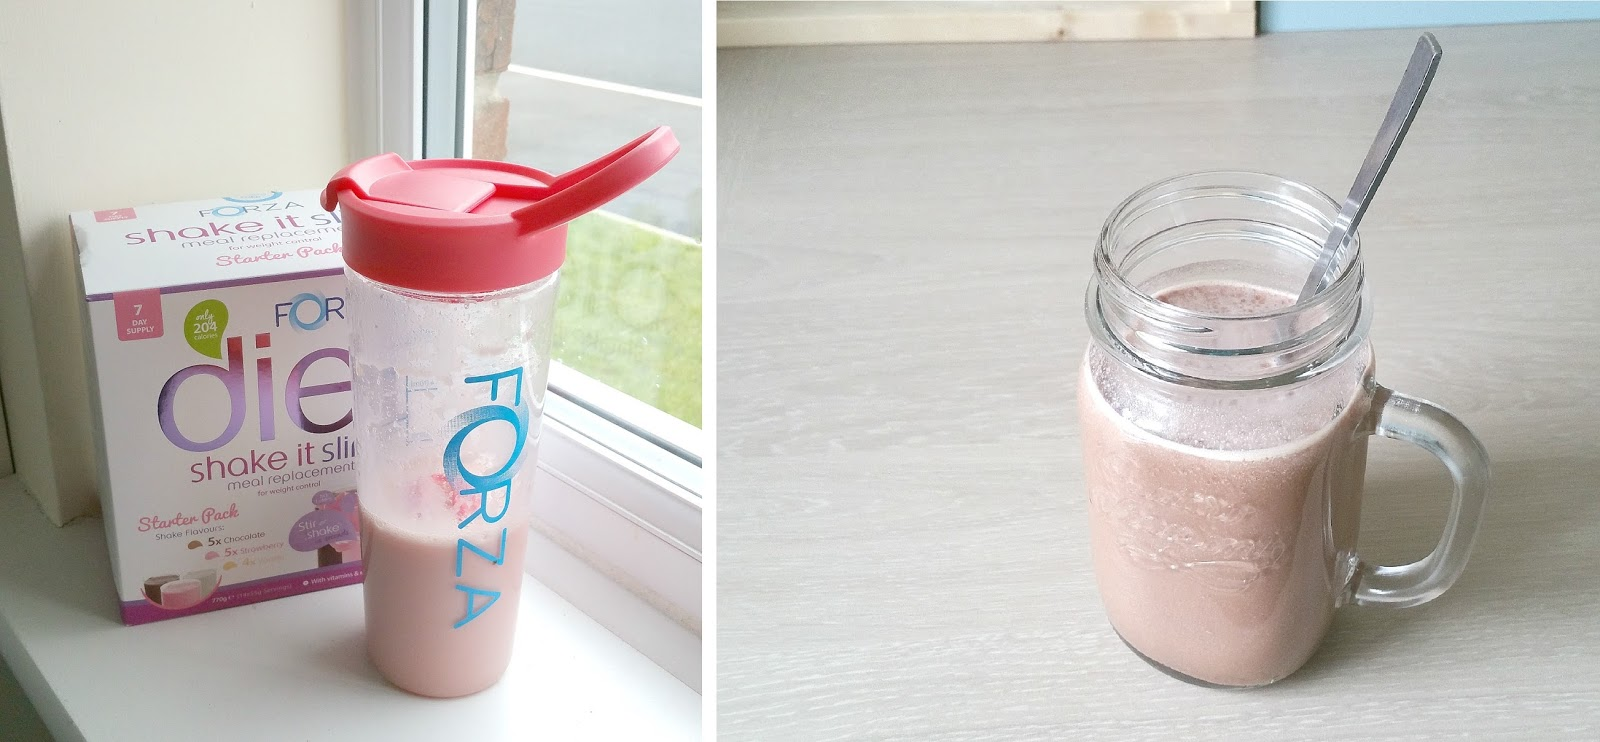 Forza Raspberry K2, Forza Shake it Slim, Diet suppliments